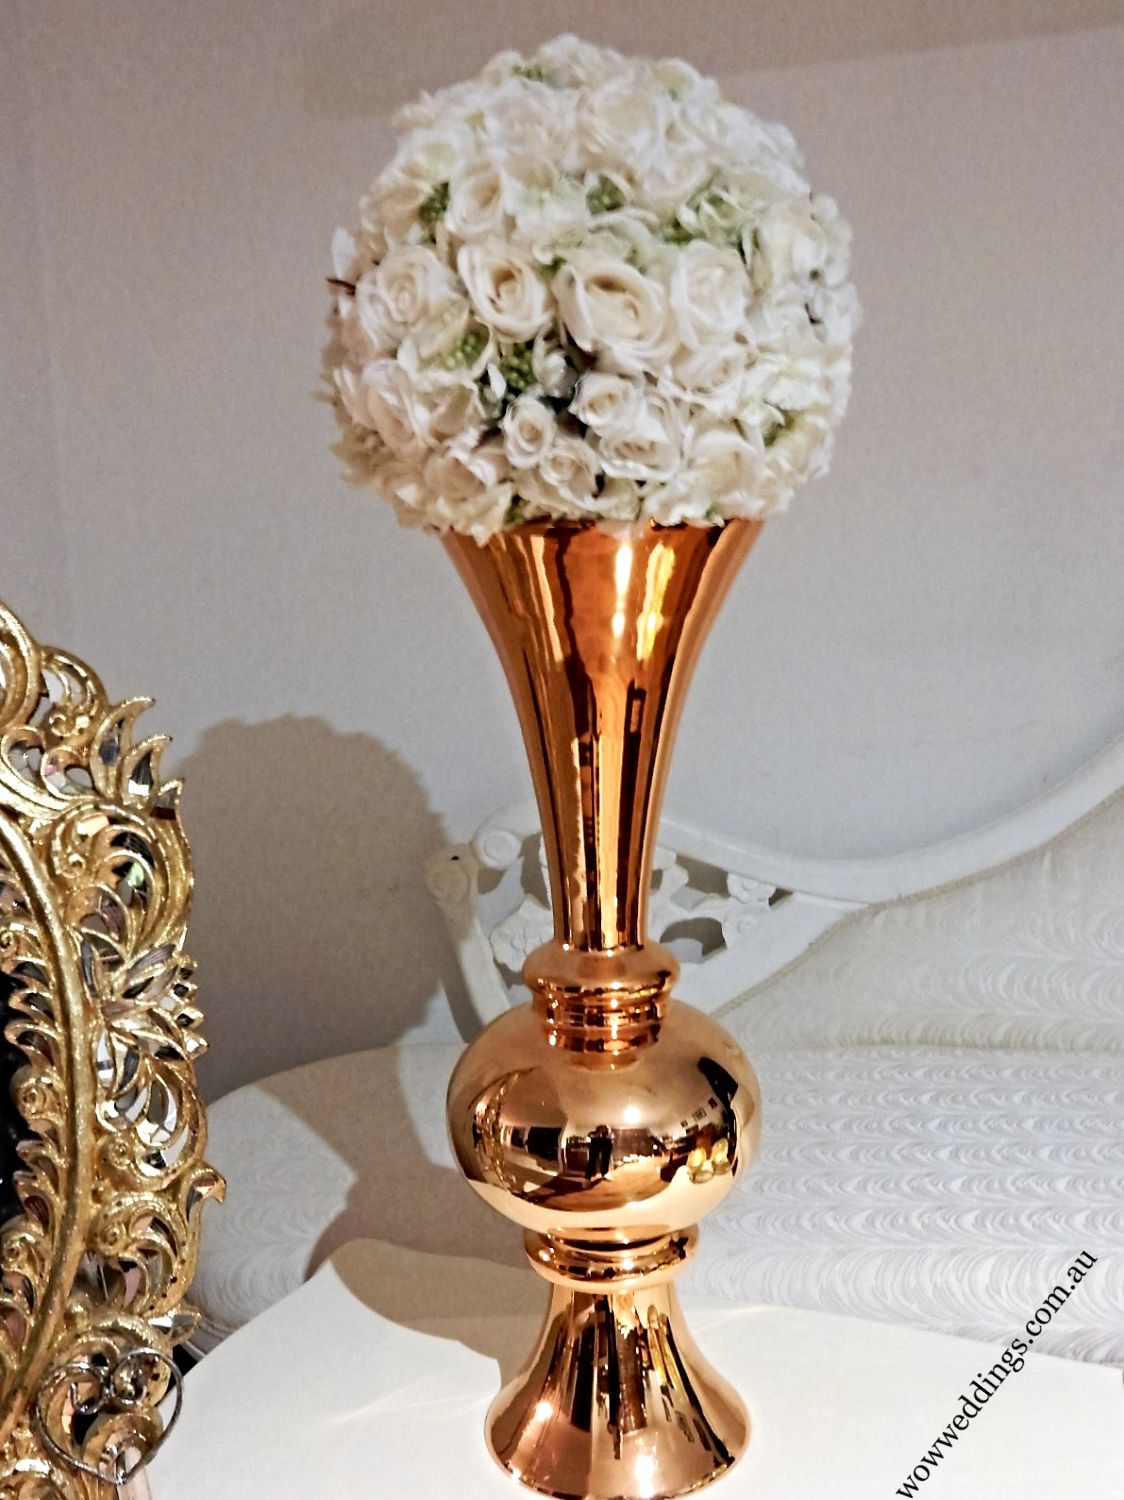 Gold trumphet vase w kissing ball